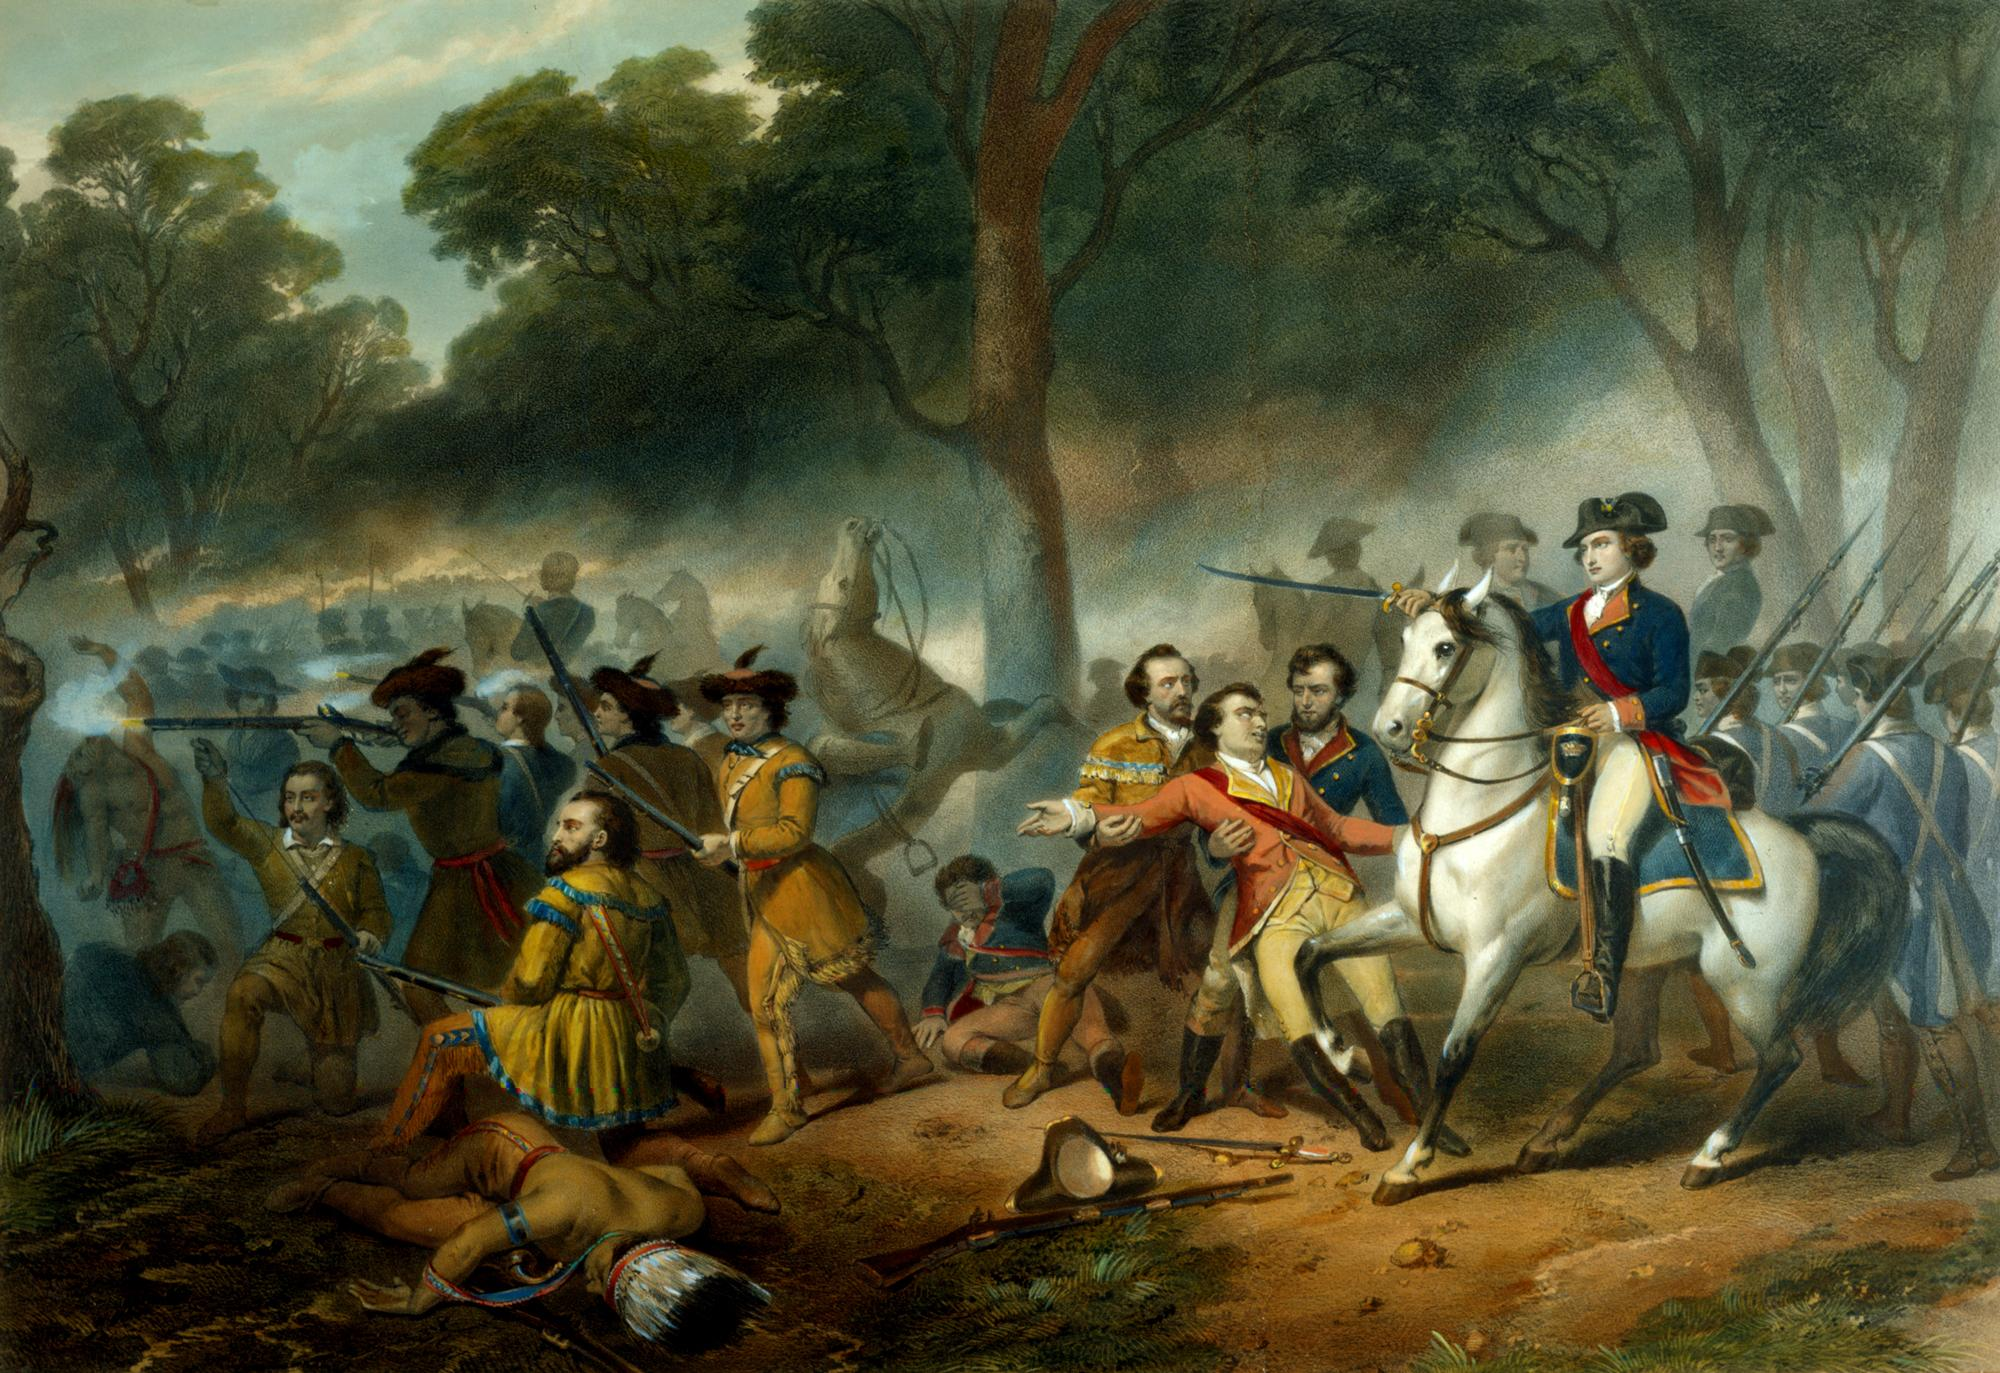 George Washington rallying the broken forces at the Battle of Monongahela on July 9, 1755. [Washington the Solider], c.1834, Library of Congress.